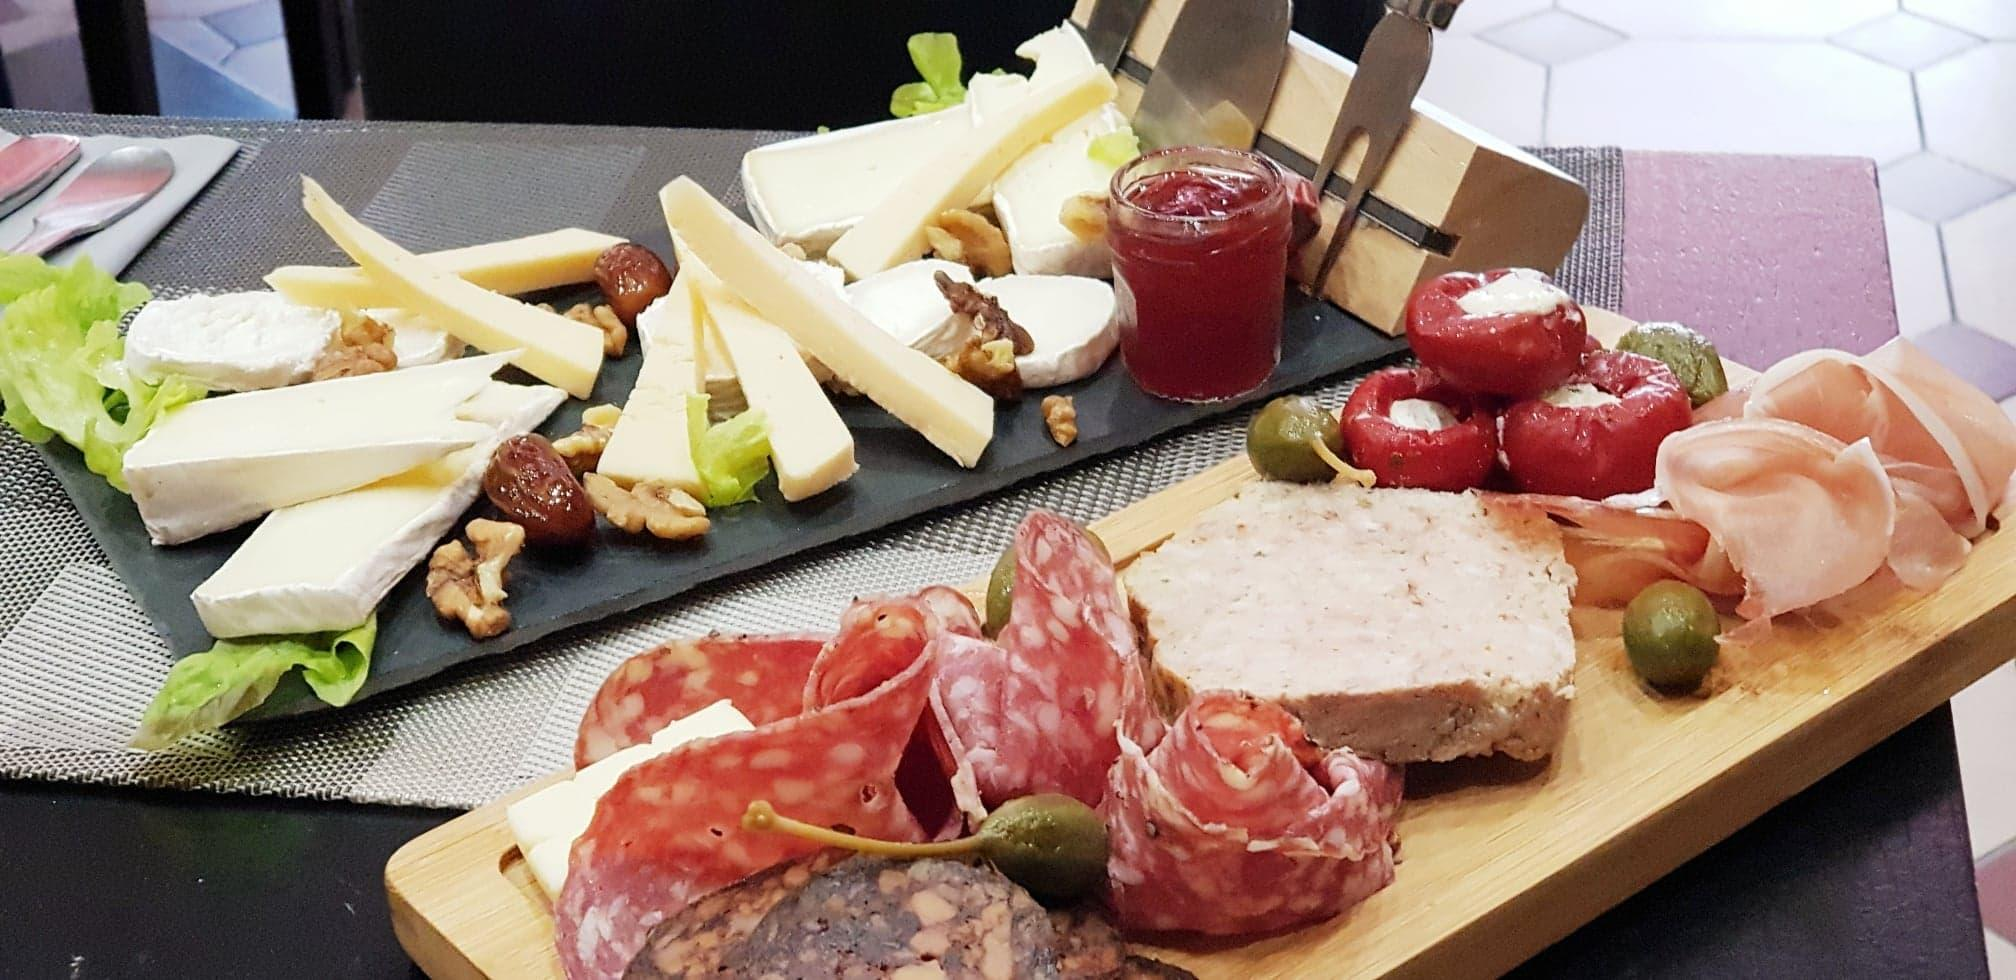 Plateaux charcuteries / fromage